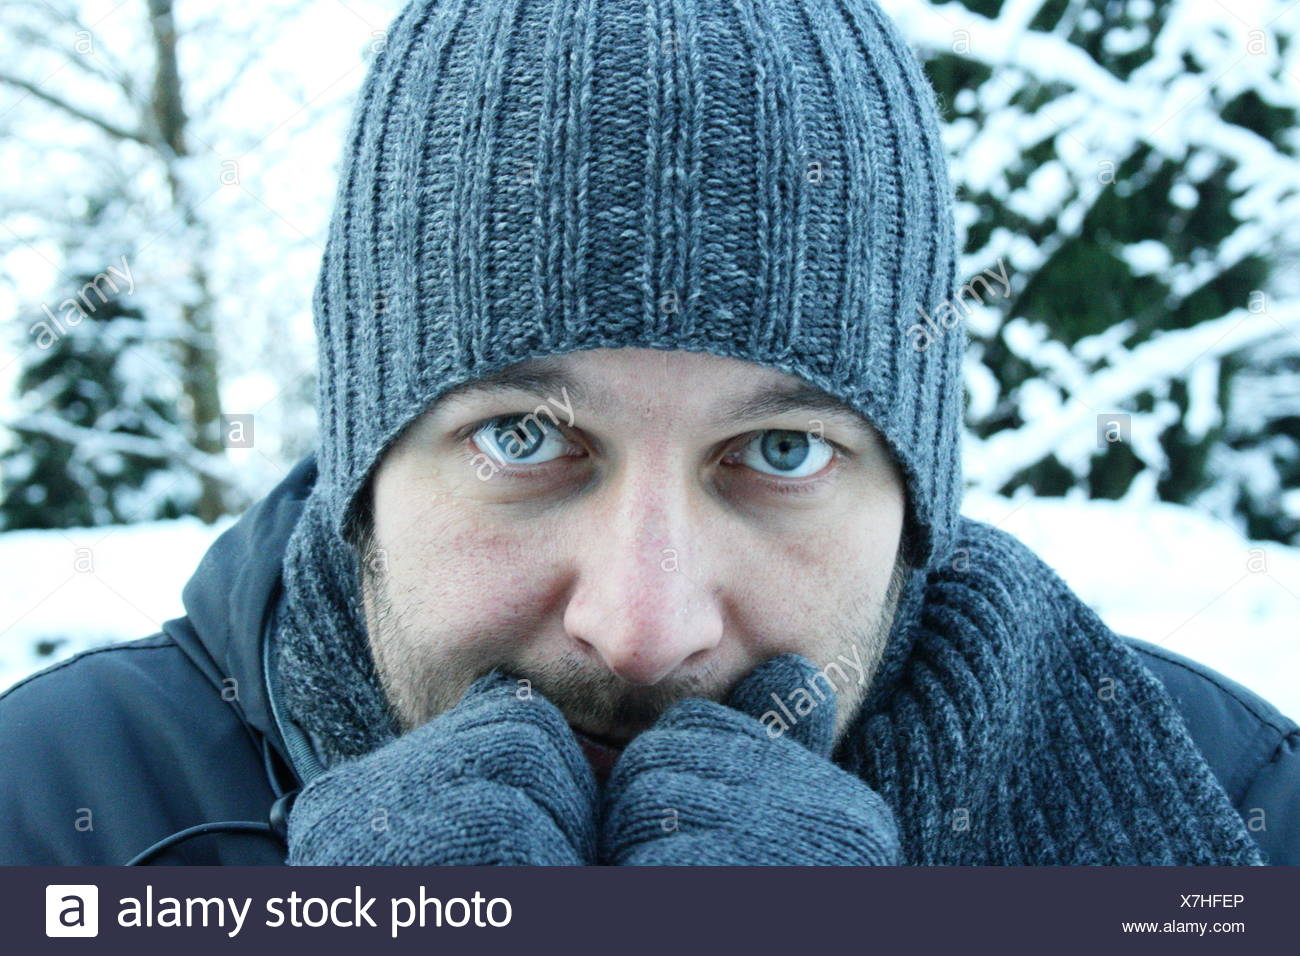 Portrait of a man in warm clothing shivering - Stock Image